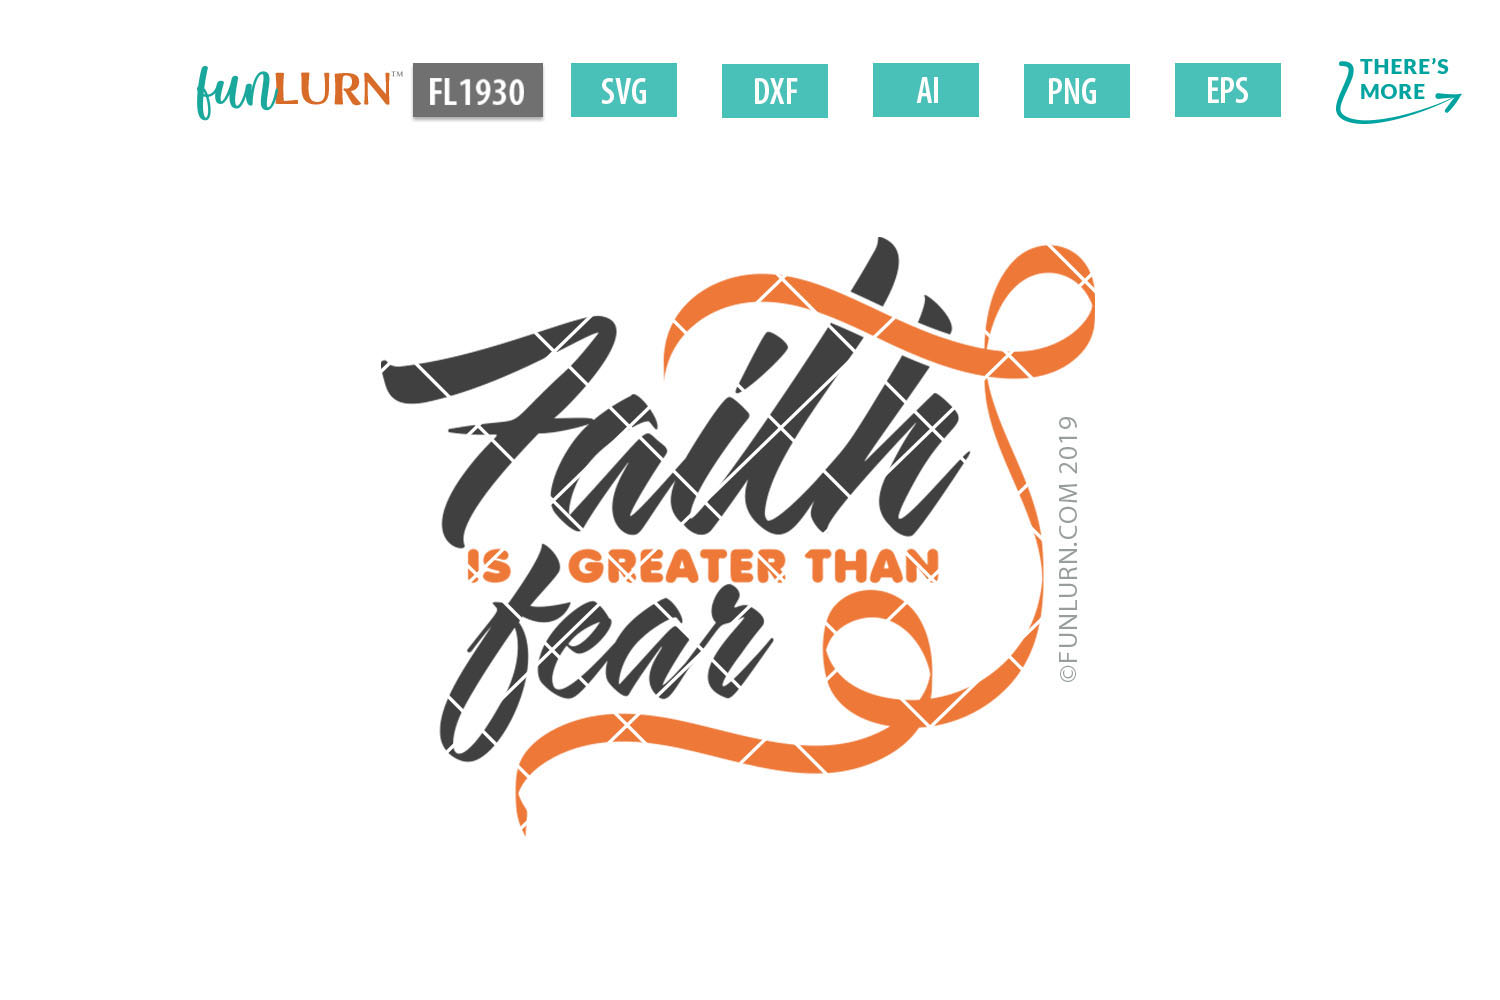 Faith is Greater Than Fear Orange Ribbon SVG Cut File example image 2